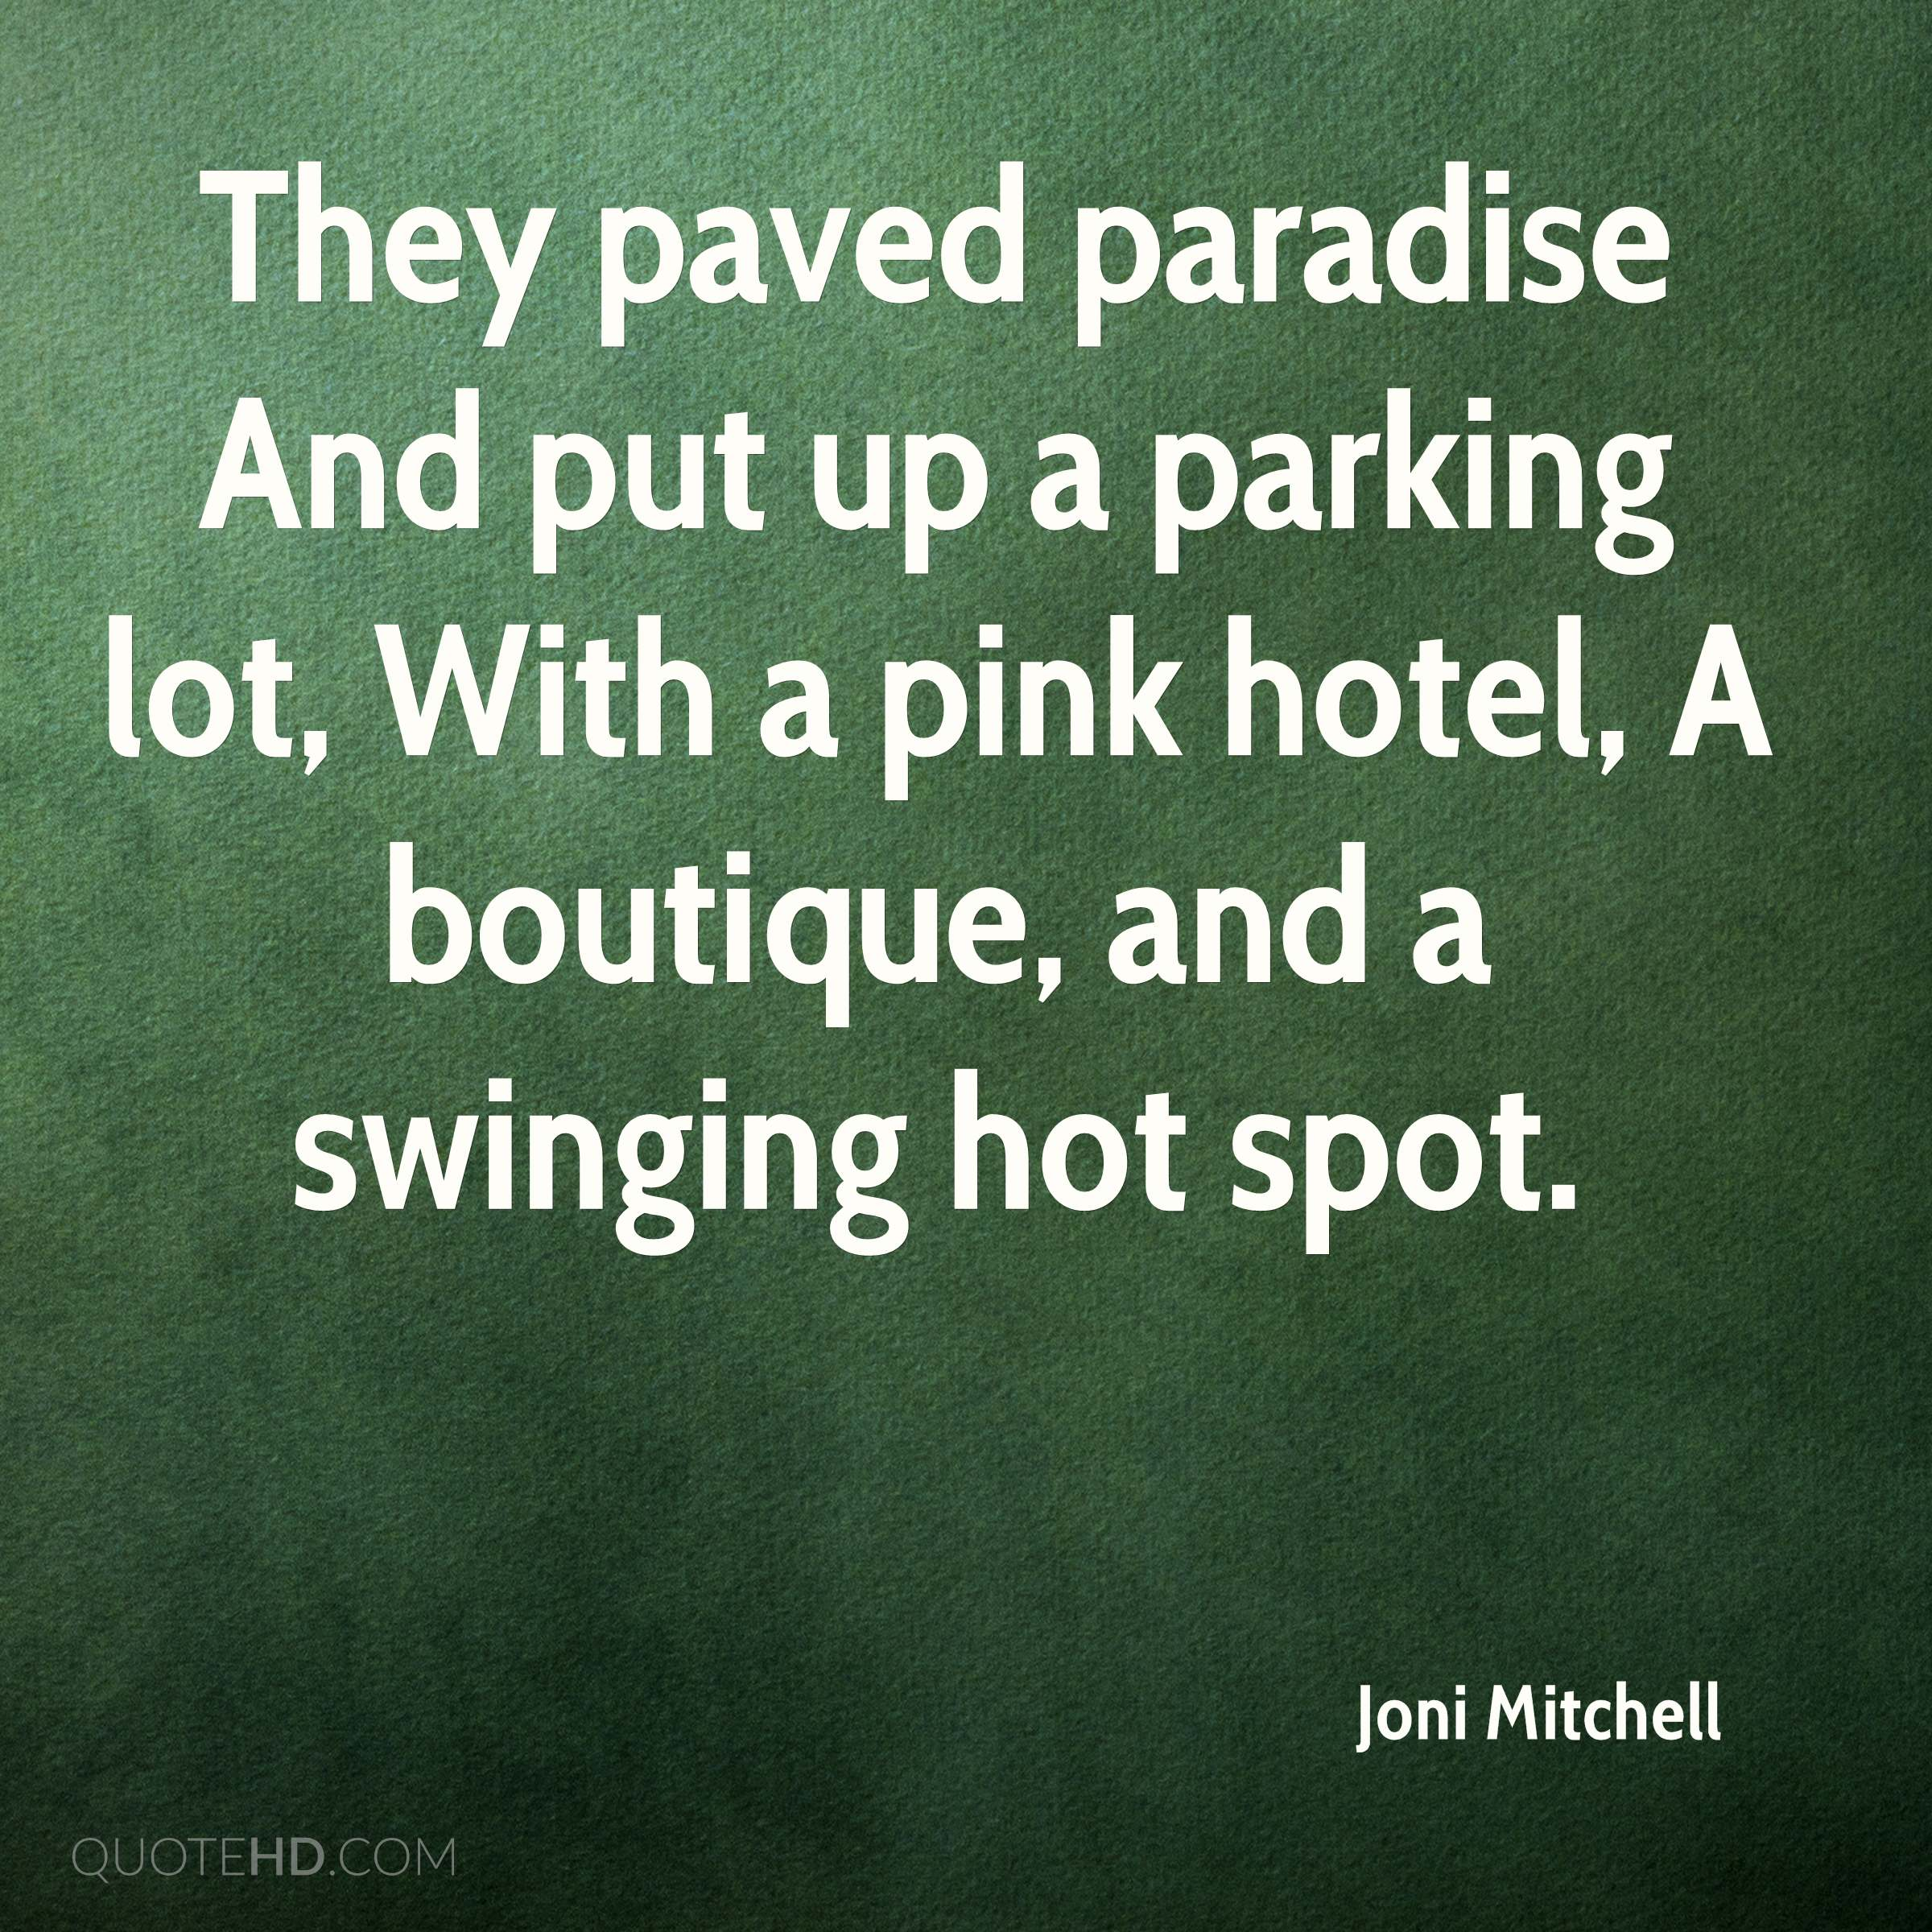 They paved paradise And put up a parking lot, With a pink hotel, A boutique, and a swinging hot spot.